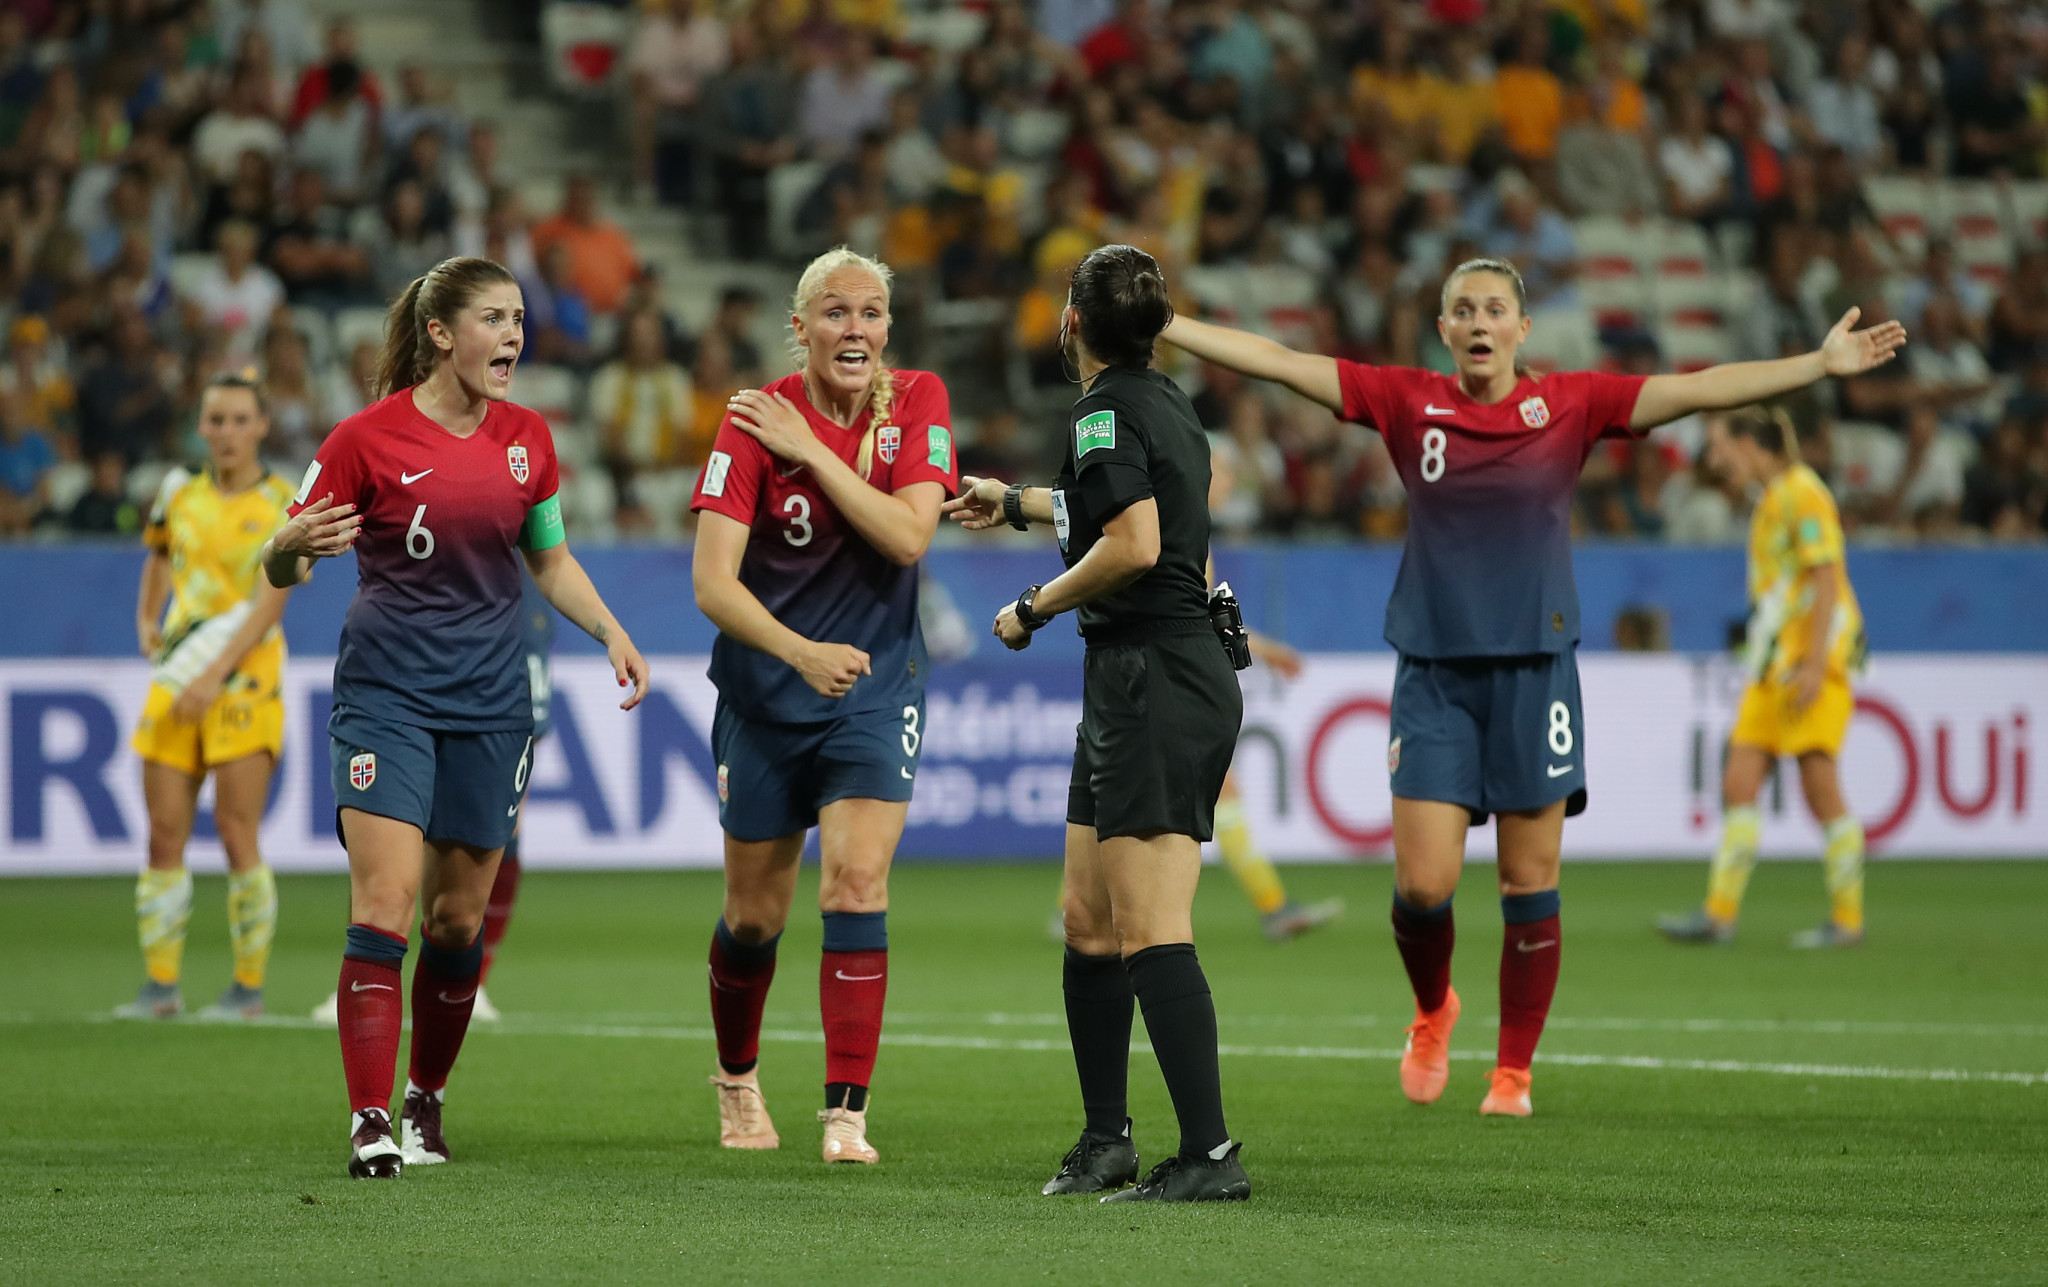 Maria Thorisdóttir complains after the referee gives a penalty against Norway for handball, which was overturned following the intervention of VAR ©Getty Images